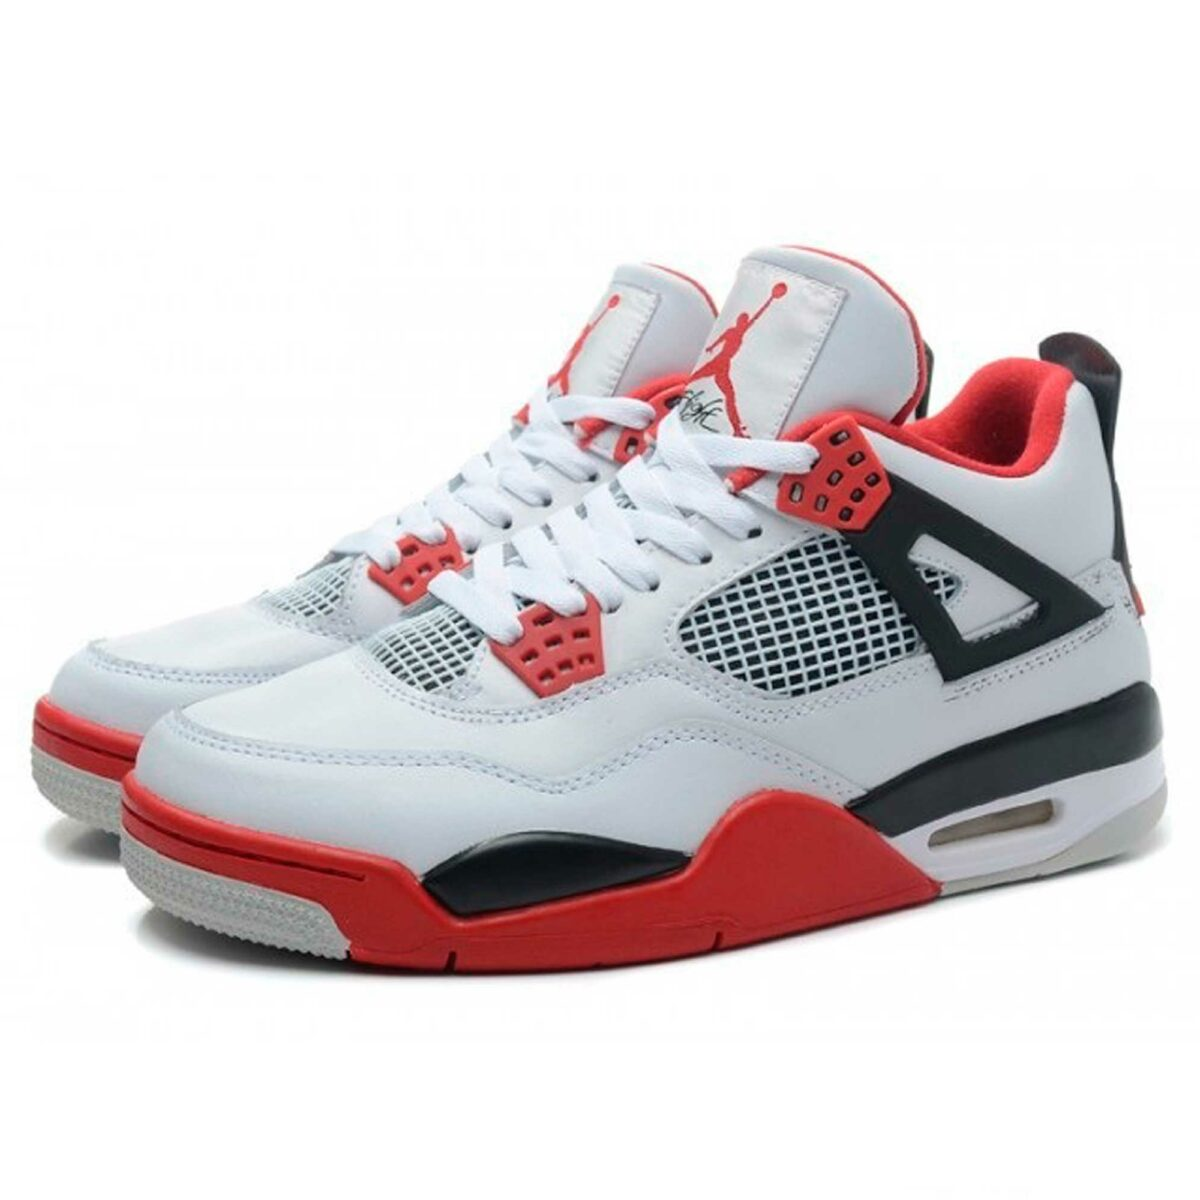 nike air jordan 4 retro fire red 408452-110 купить